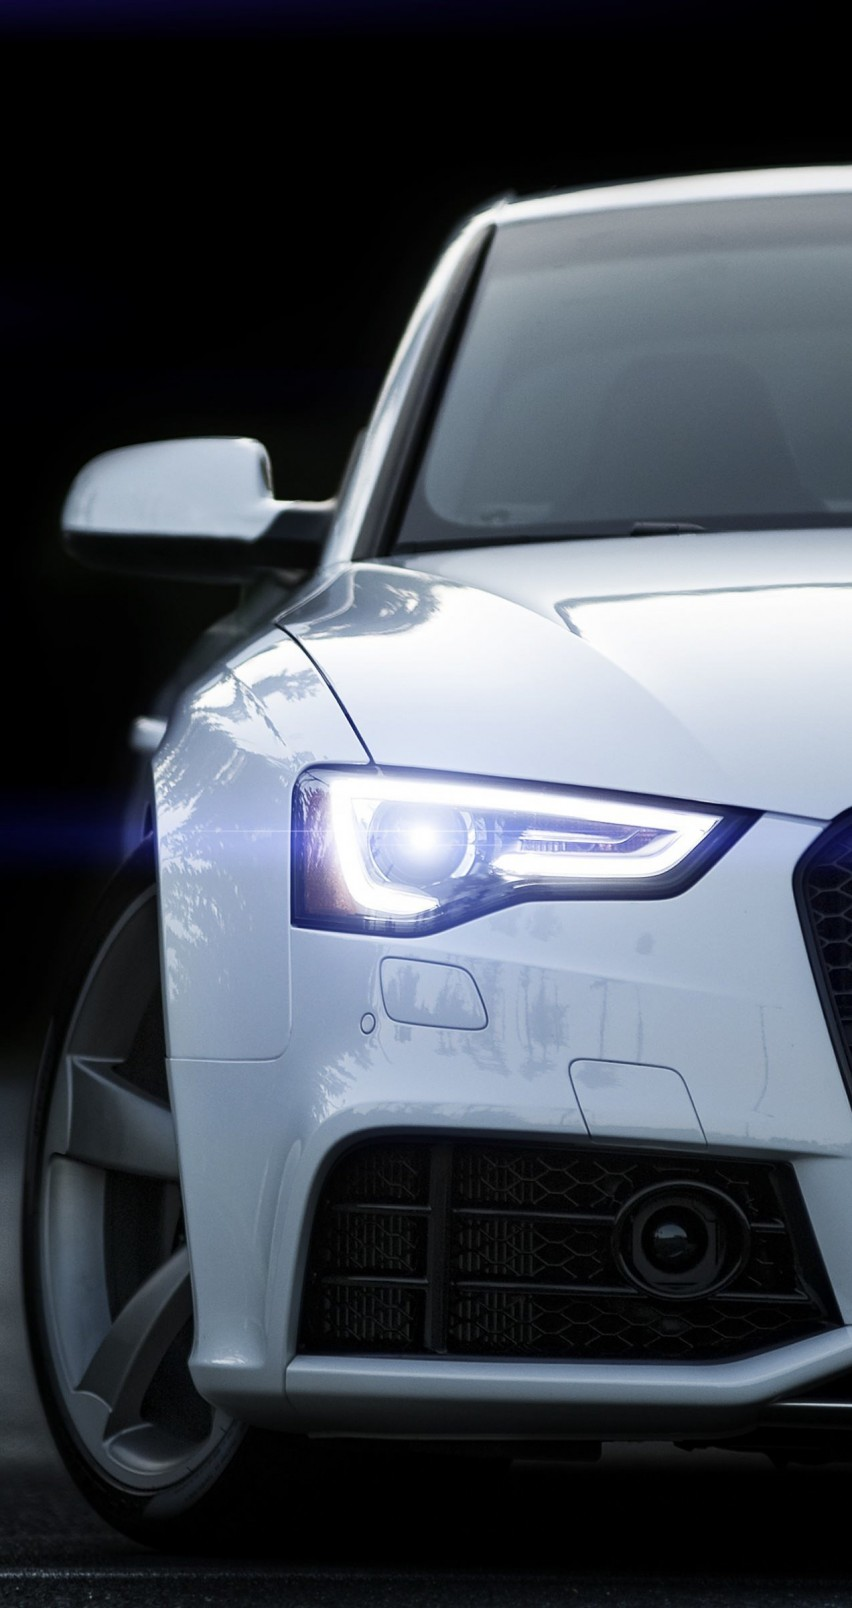 2015 Audi RS 5 Coupe Wallpaper for Apple iPhone 6 / 6s